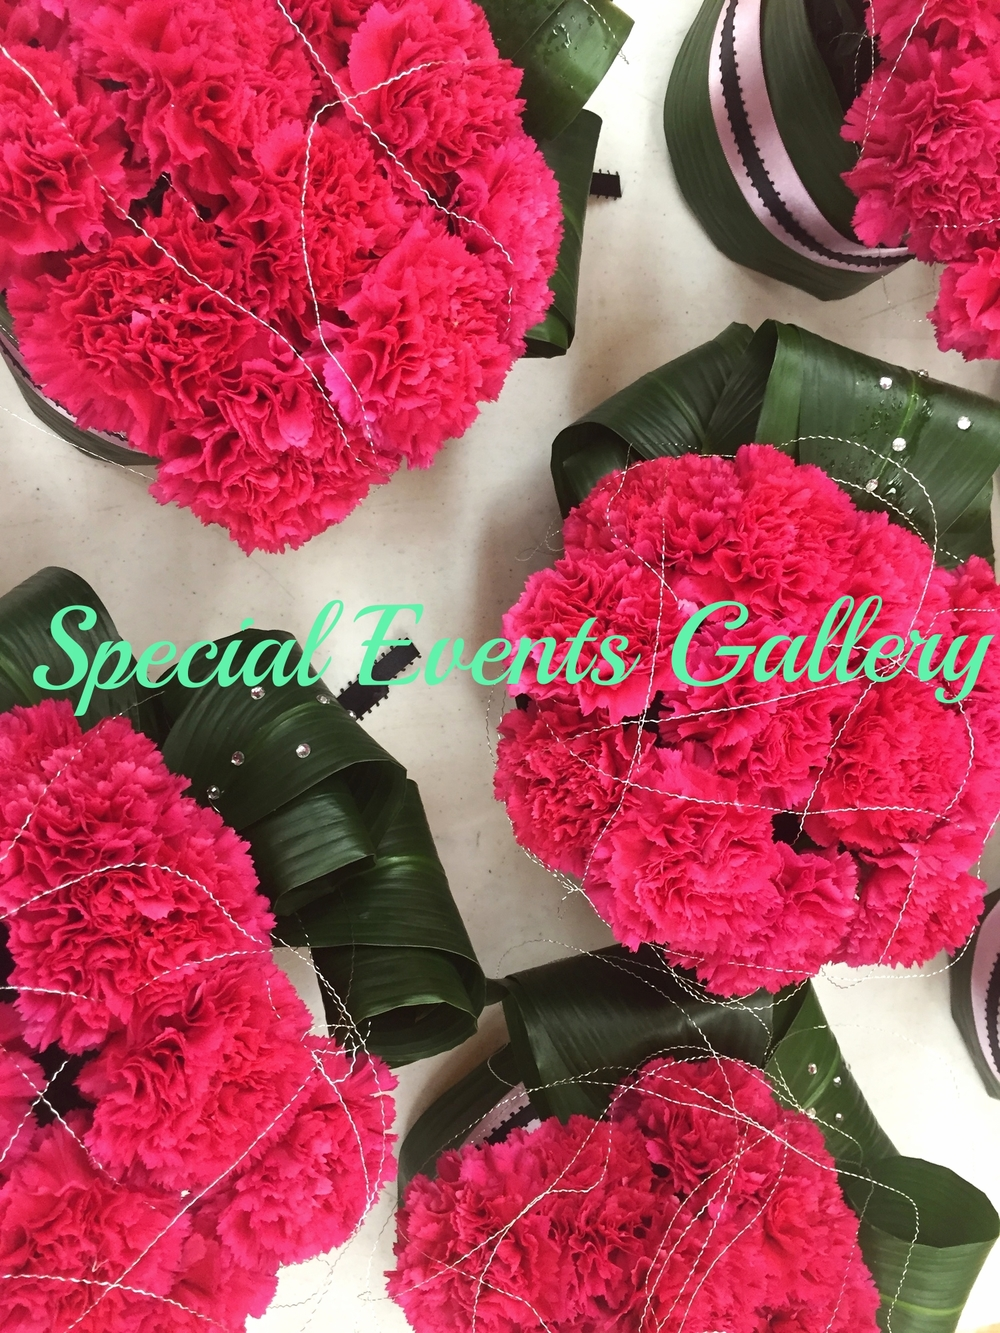 Special Event Gallery.jpg